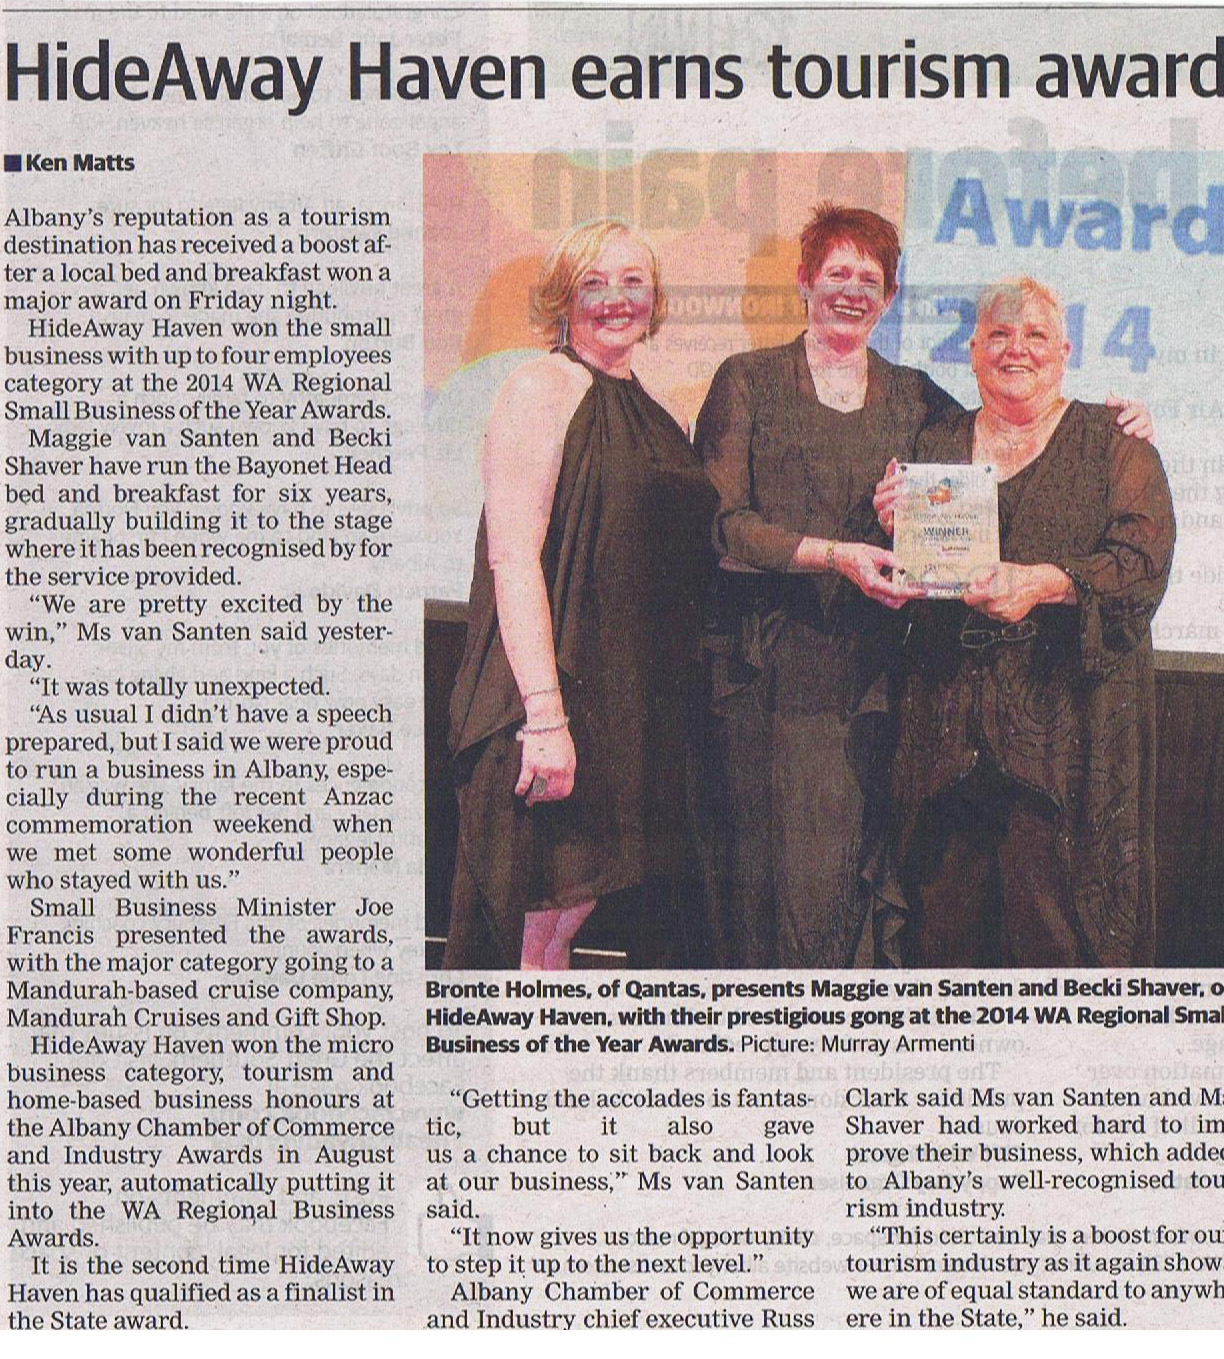 HideAway Haven earns Tourism Award